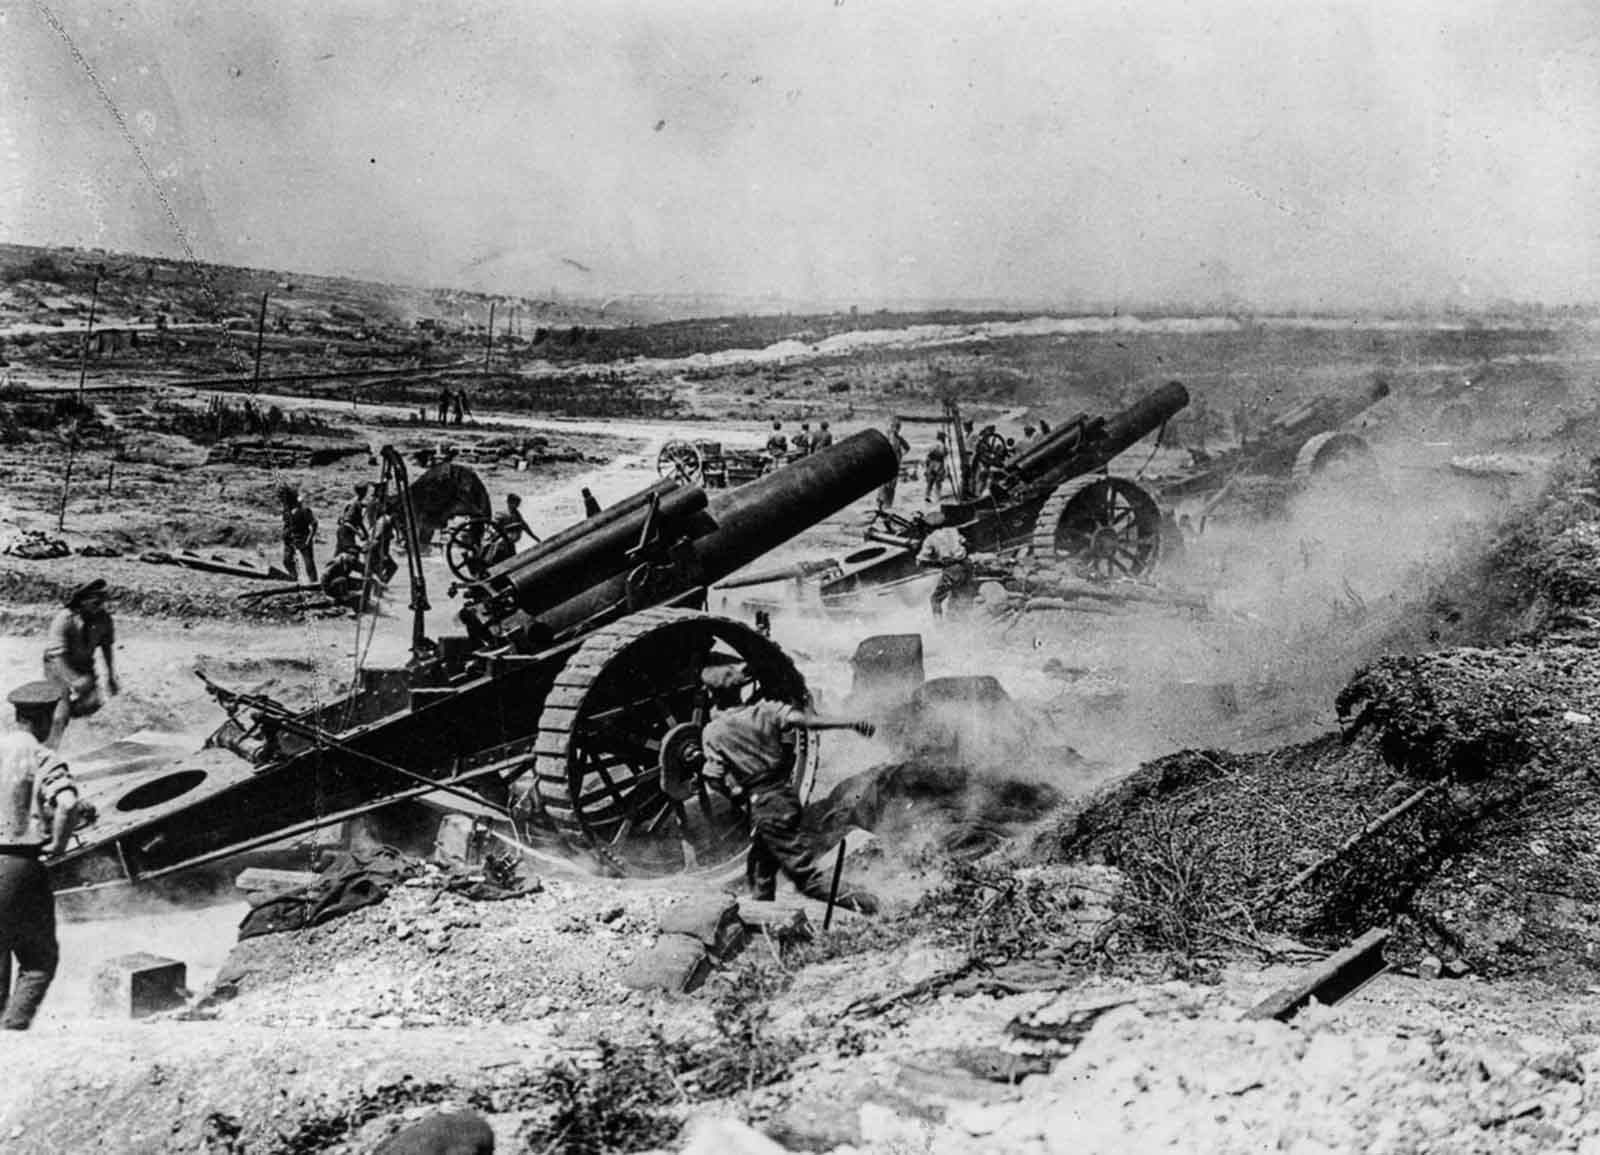 battle of the somme 1916 a 8-inch howitzers of the british 39th siege battery, royal garrison artillery firing in the fricourt-mametz valley, august 1916, during the battle of the somme.